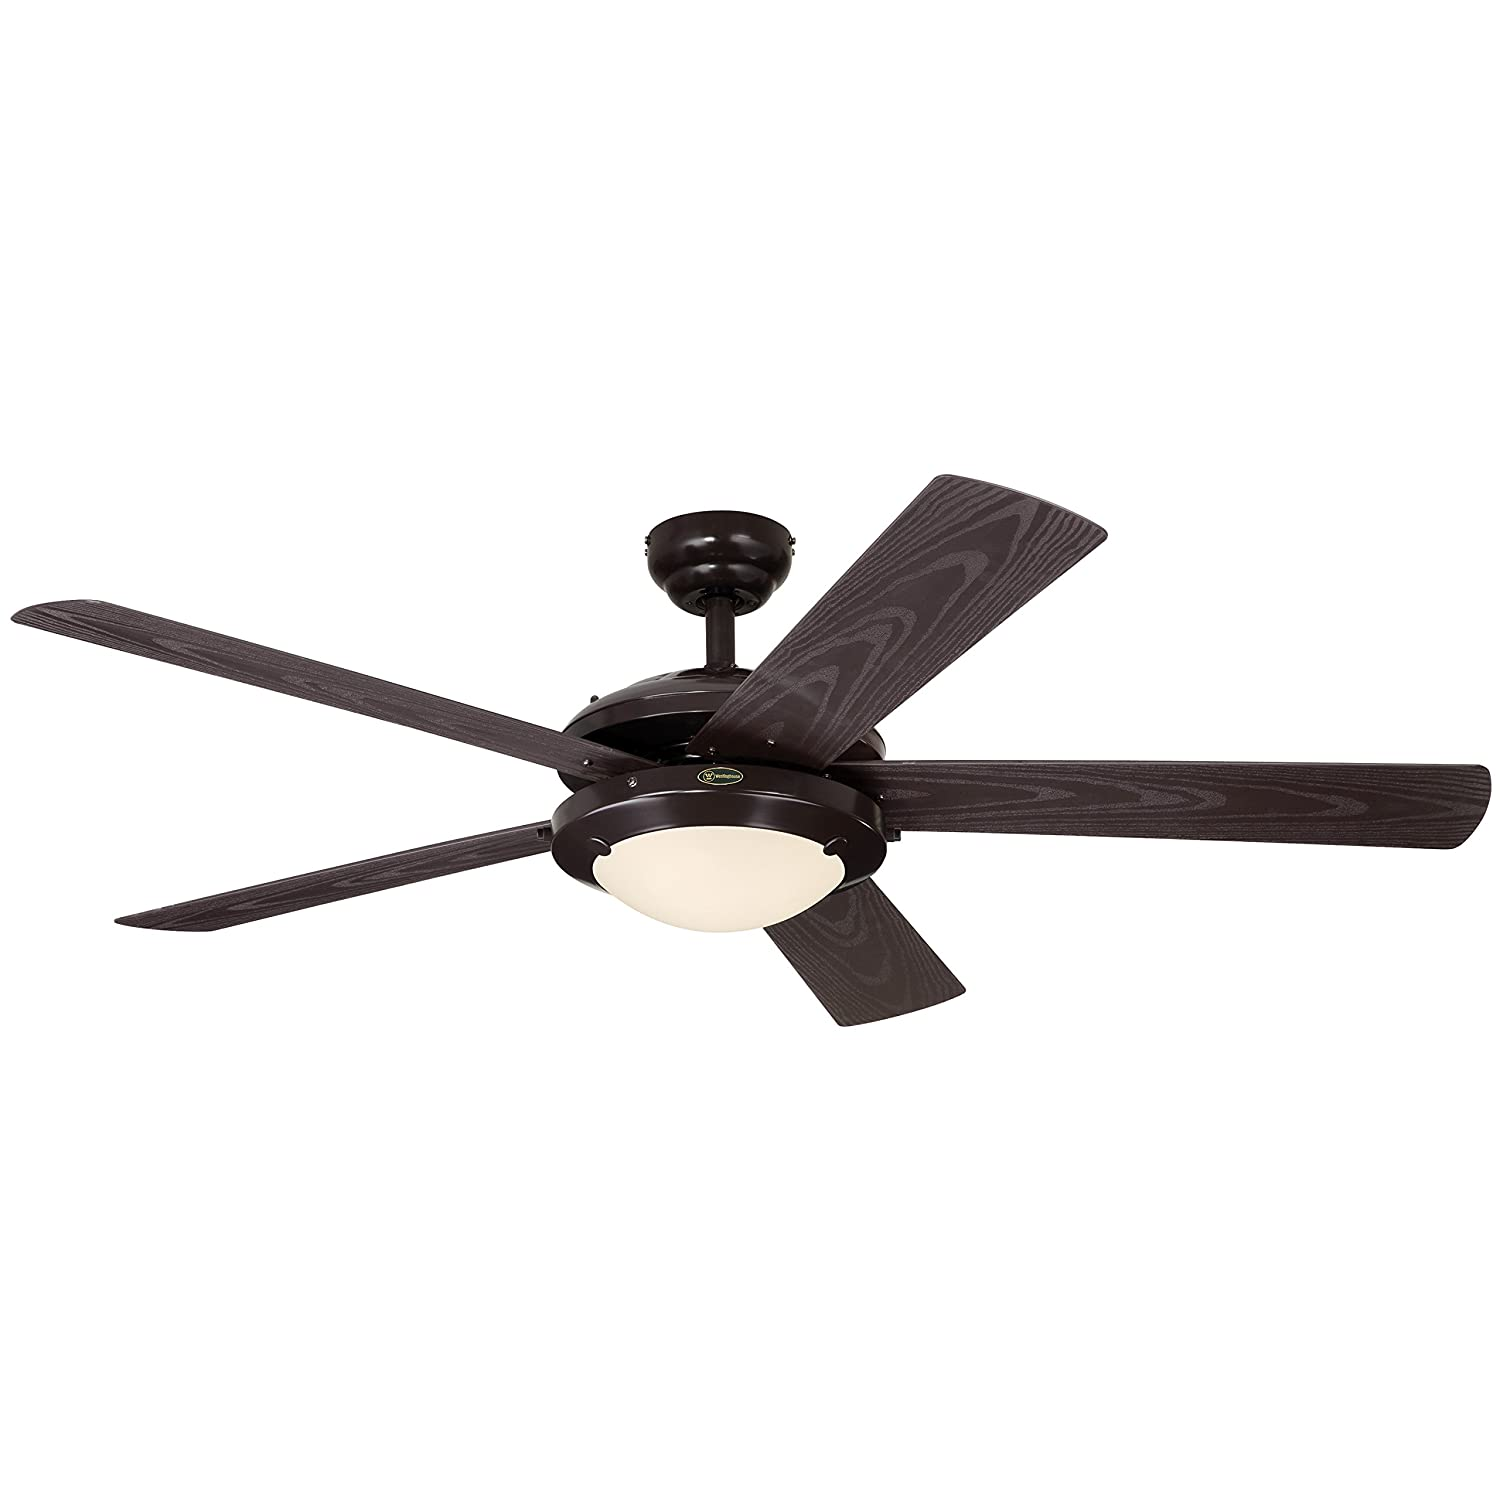 Best outdoor ceiling fans with lights comprehensive buying guide comparison chart of best outdoor ceiling fans with lights aloadofball Image collections